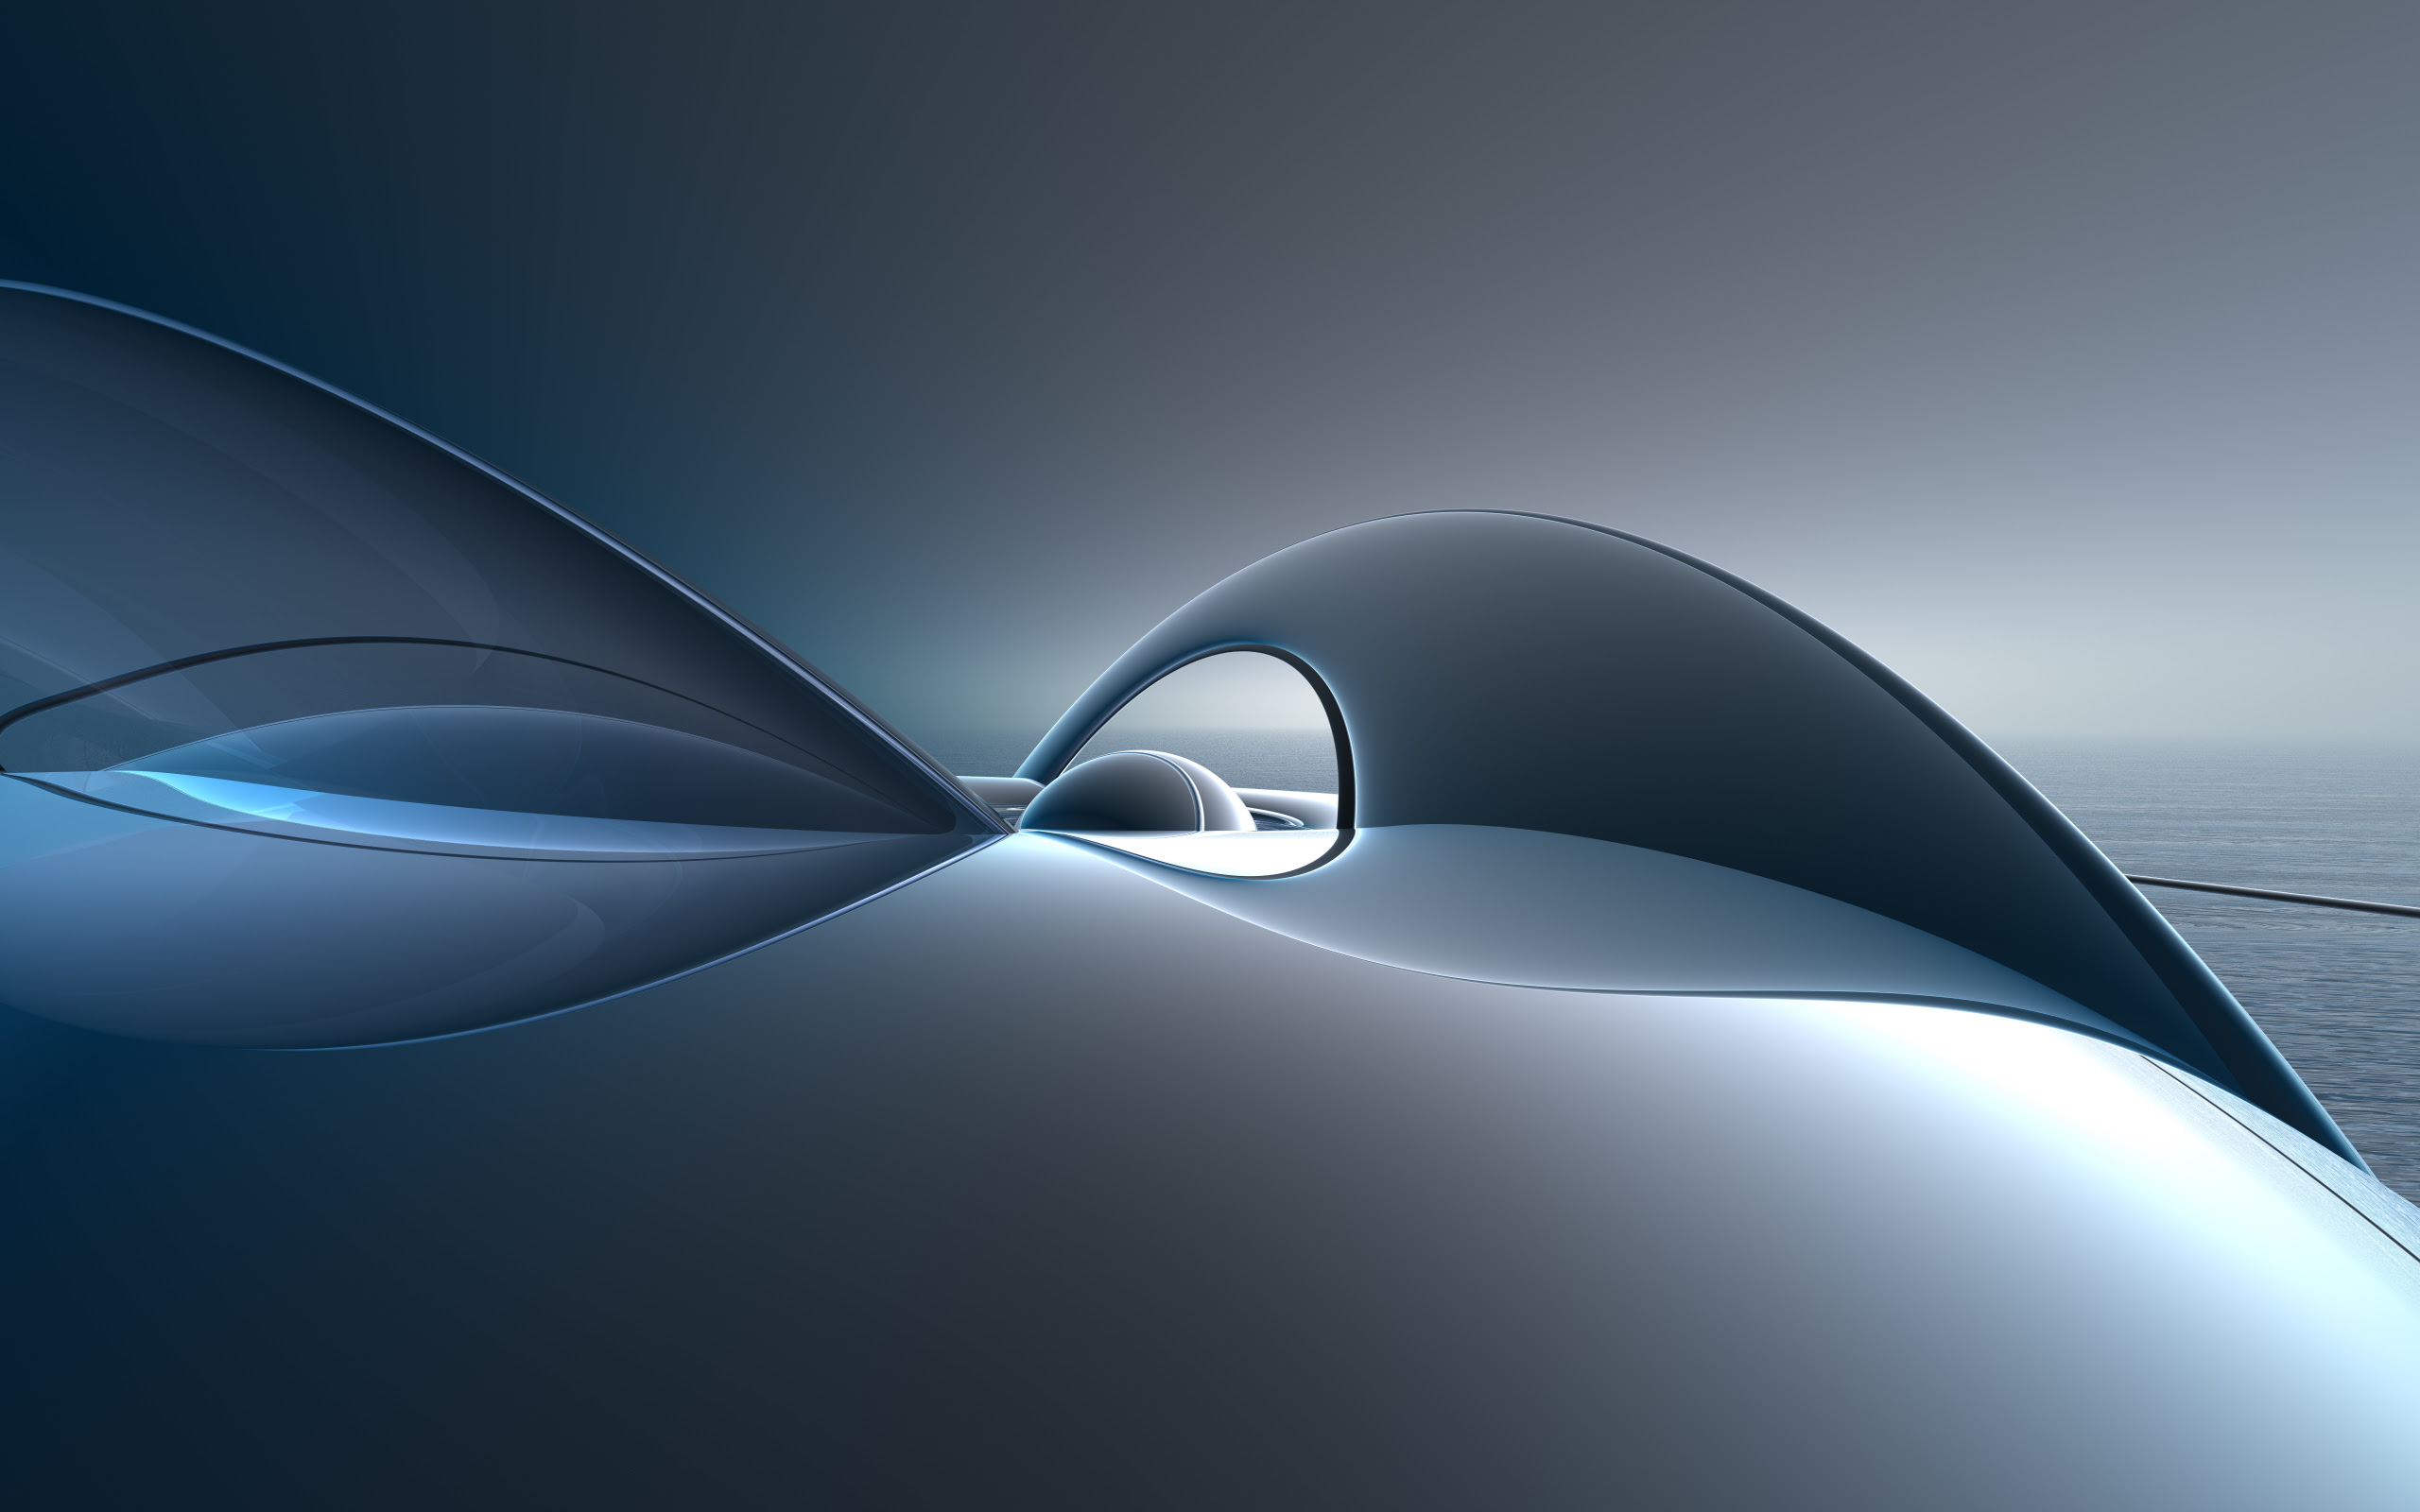 1 Cool Blue HD Wallpapers   Backgrounds - Wallpaper Abyss